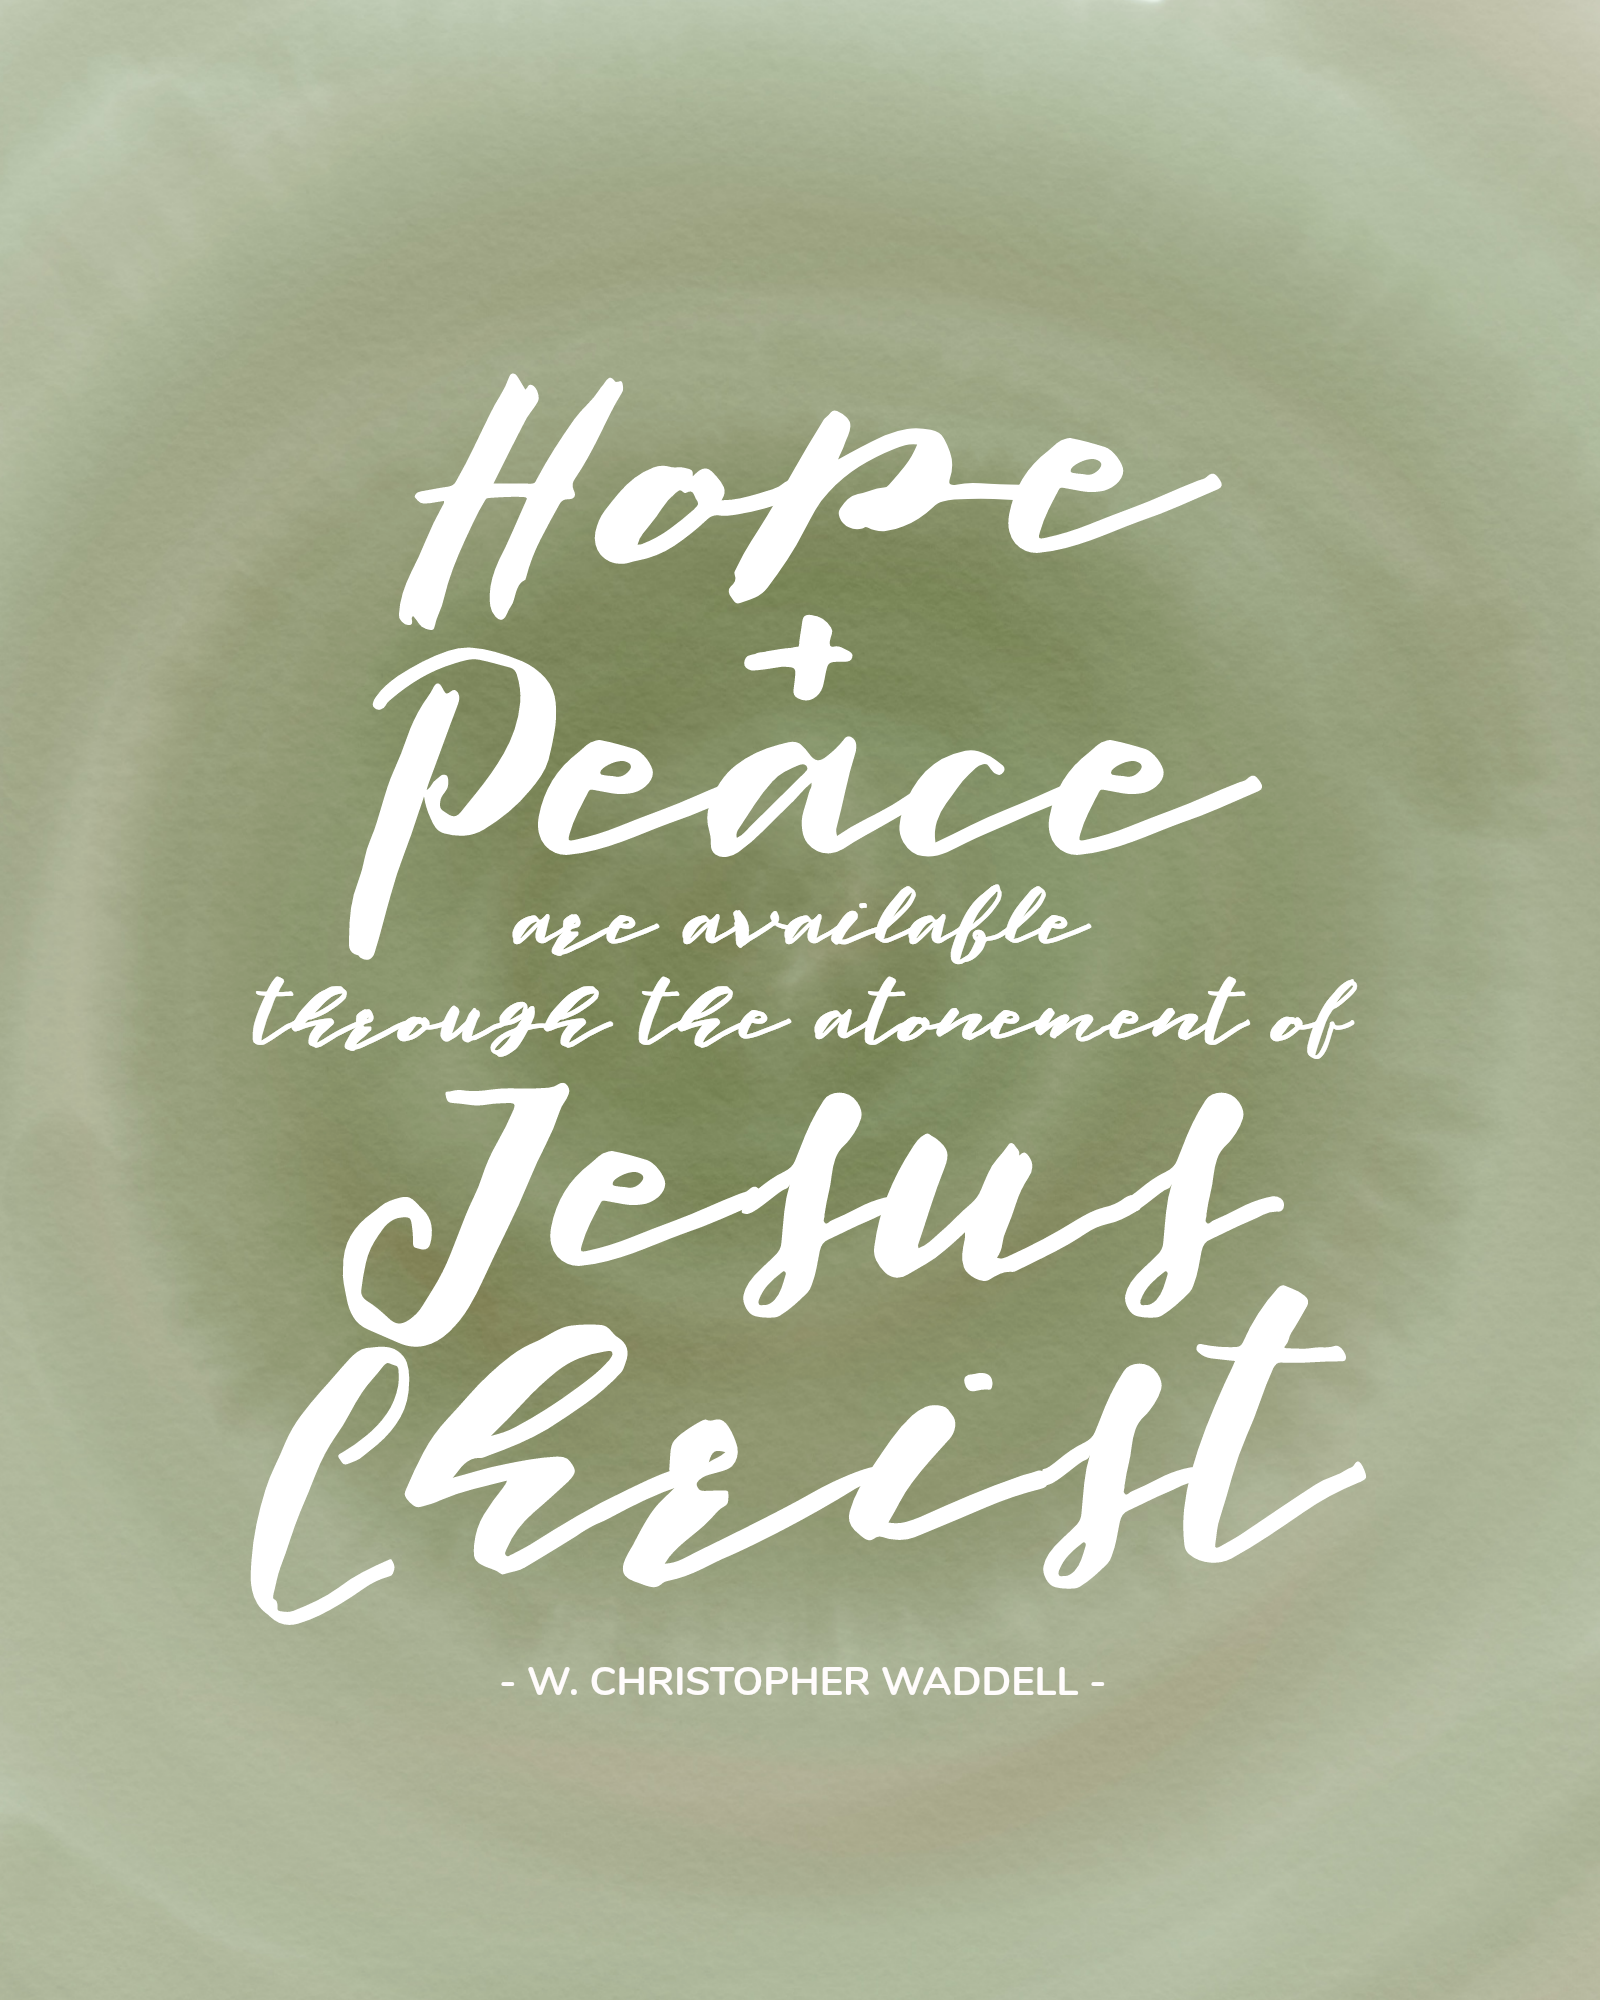 Hope and Peace are available through the atonement of Jesus Christ - W. Christopher Waddell | General Conference Quote | October 2017